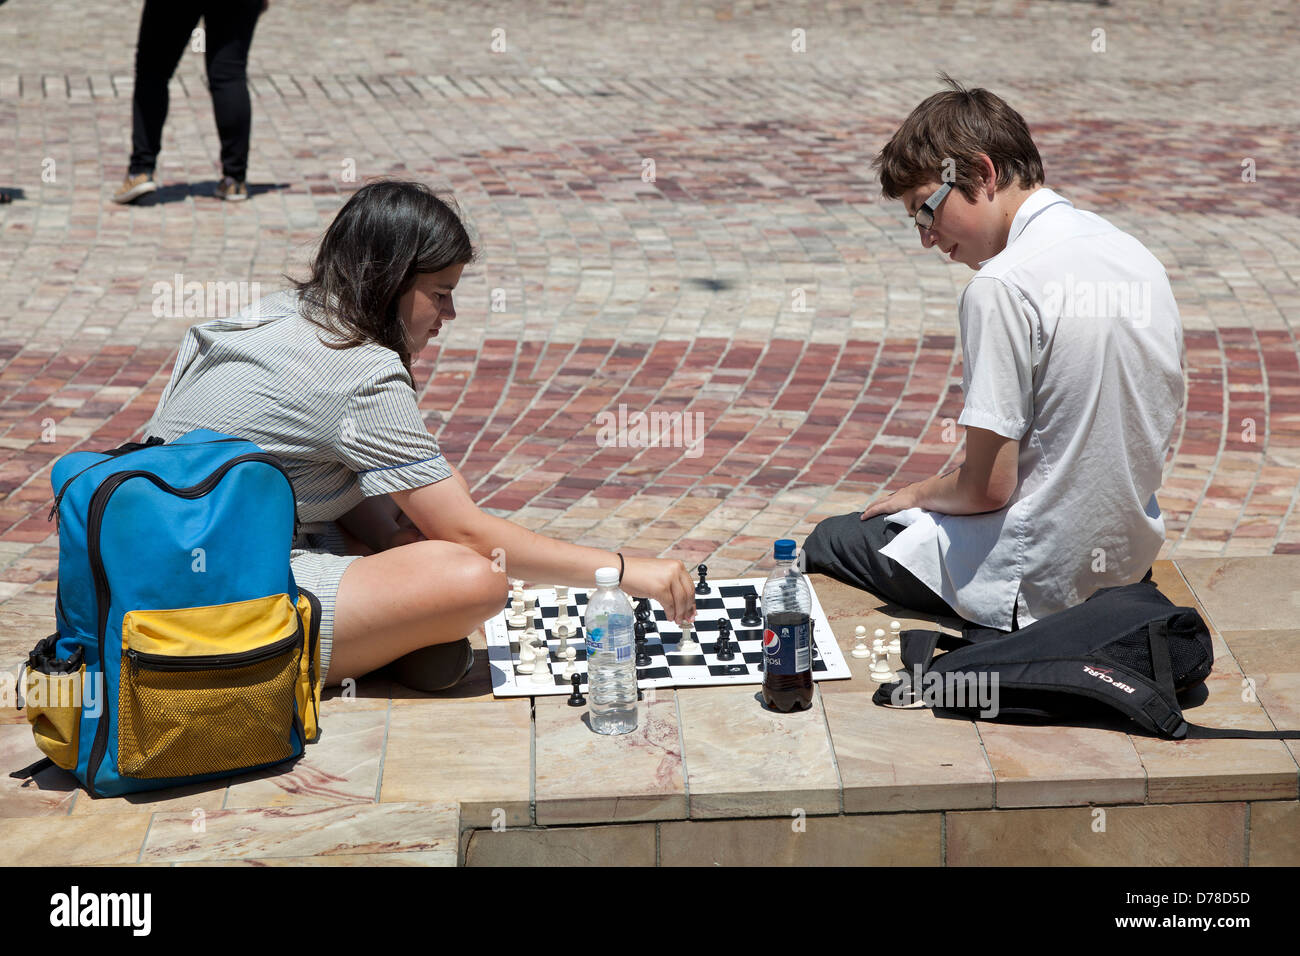 Teenagers playing chess at Federation Square, Victoria, Australia - Stock Image